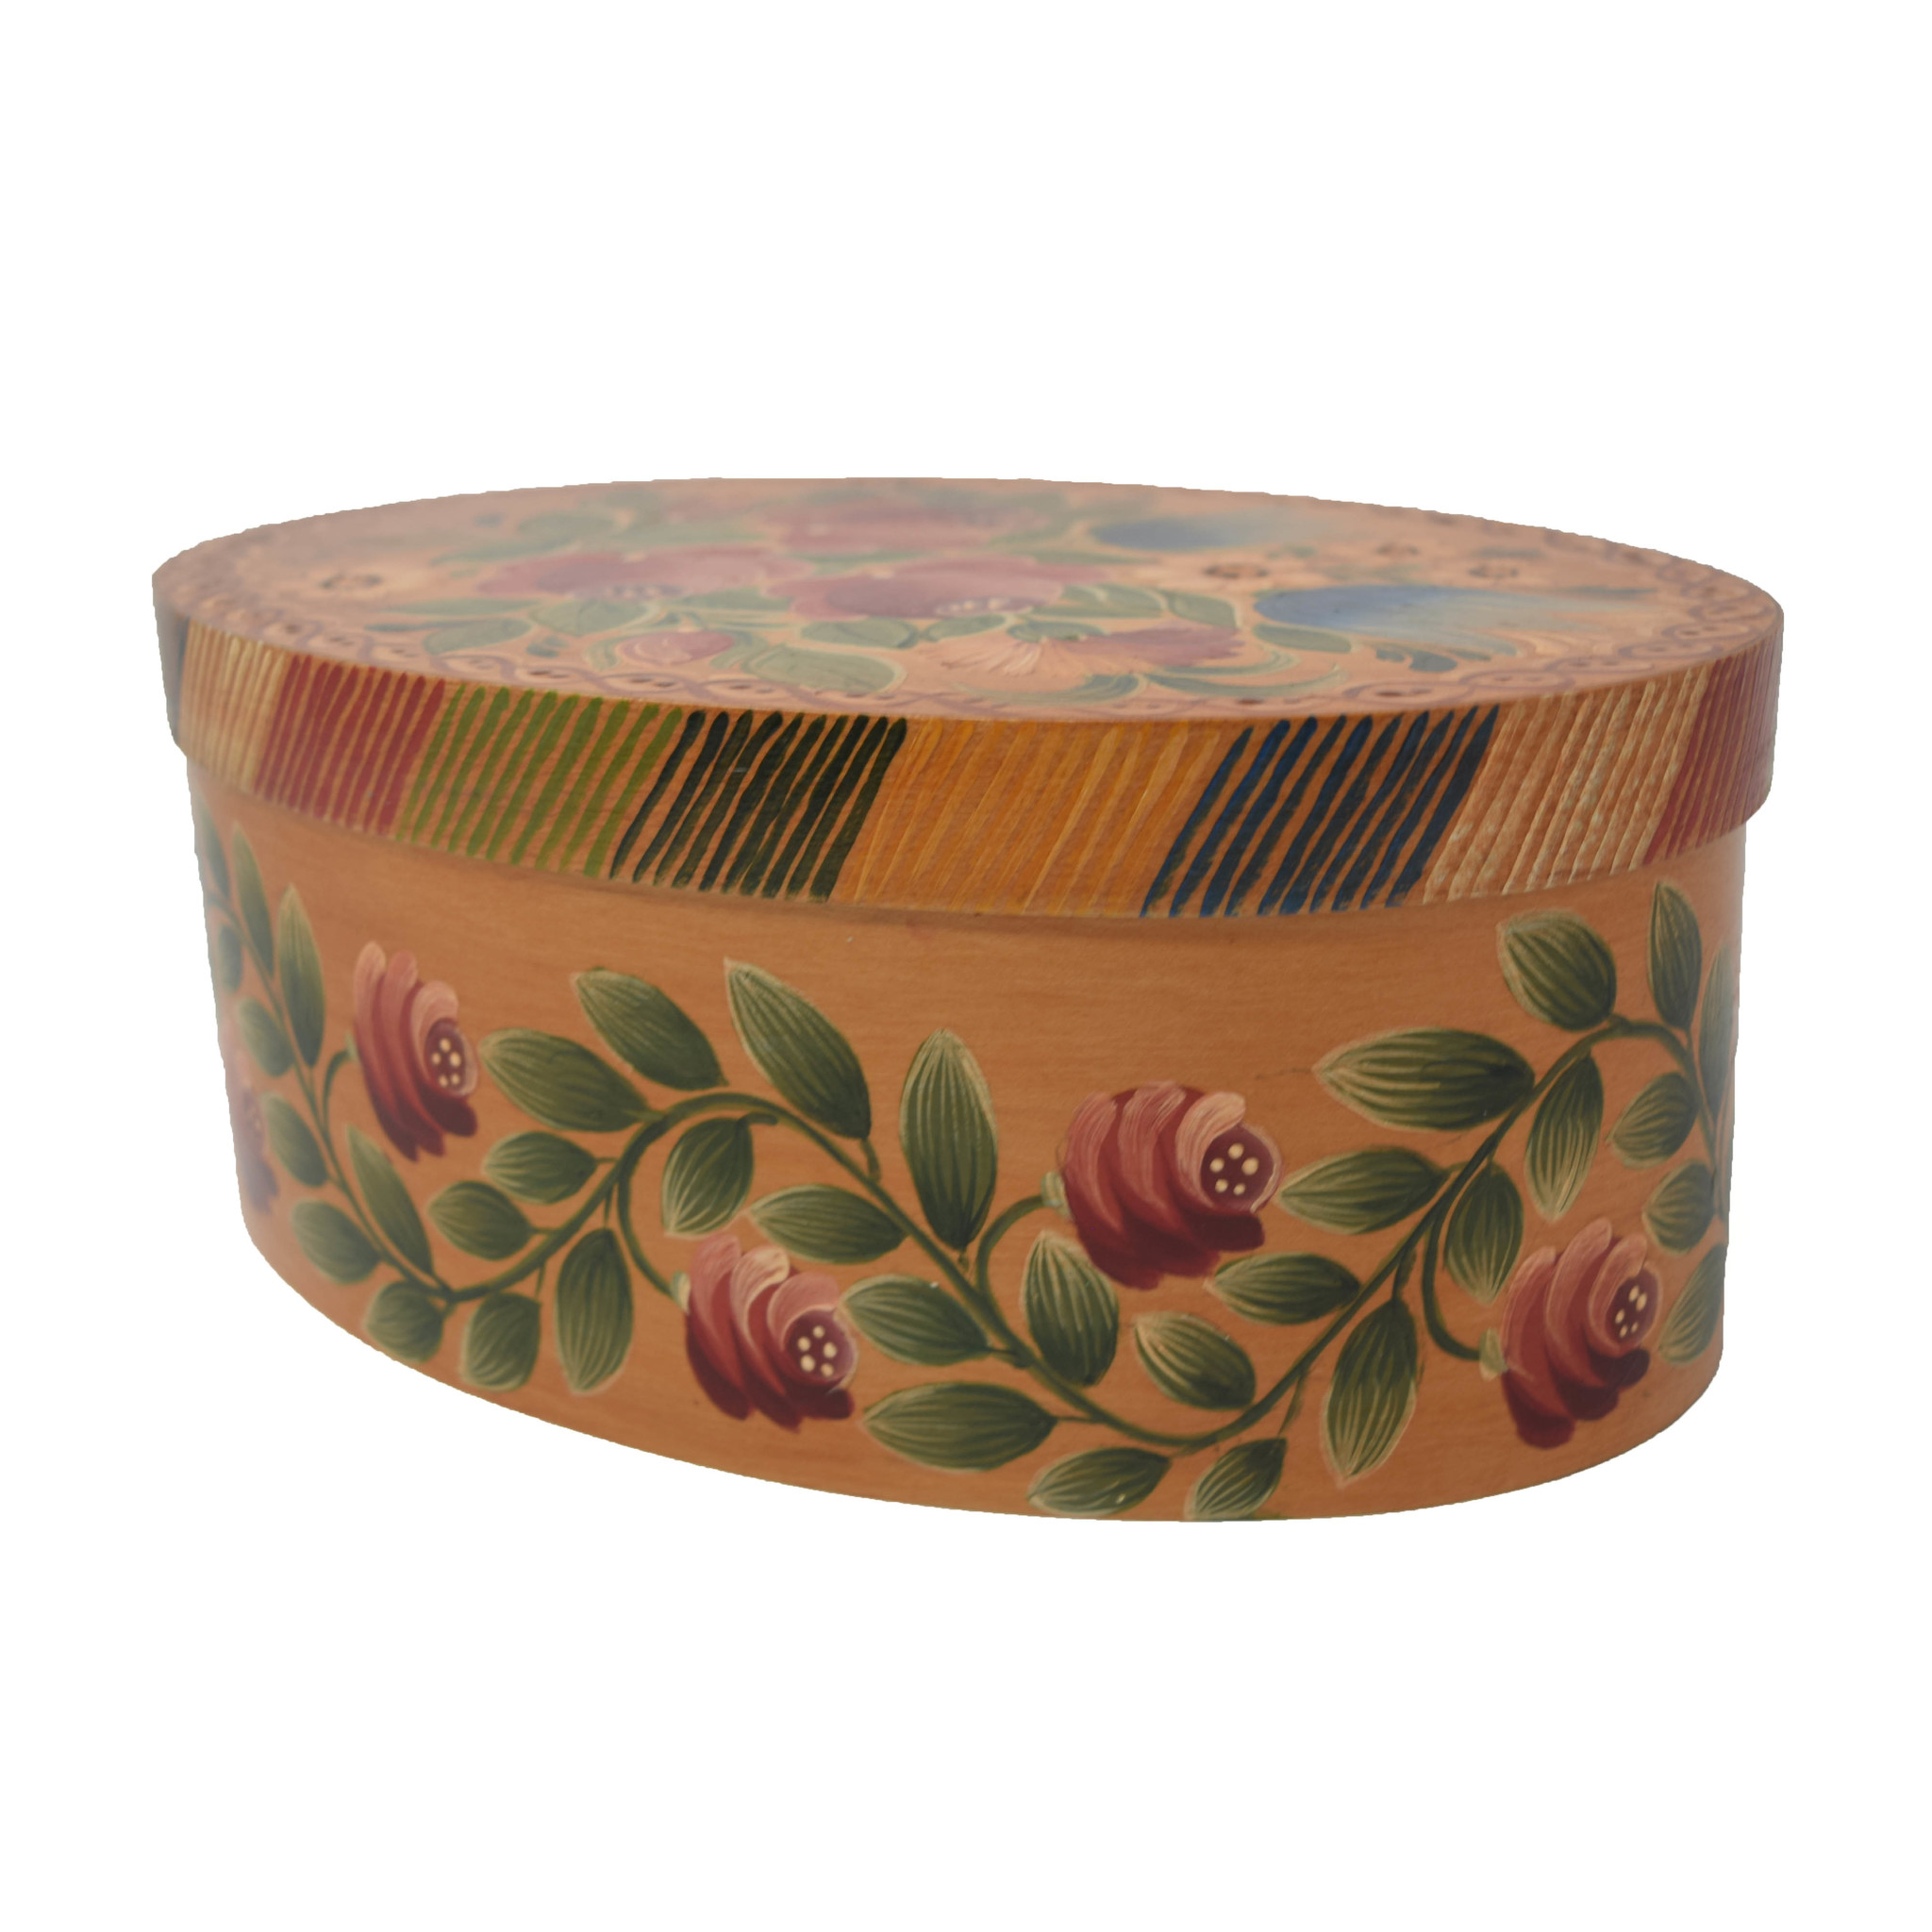 Oval Light Wood Box with Roses & Tulips-3